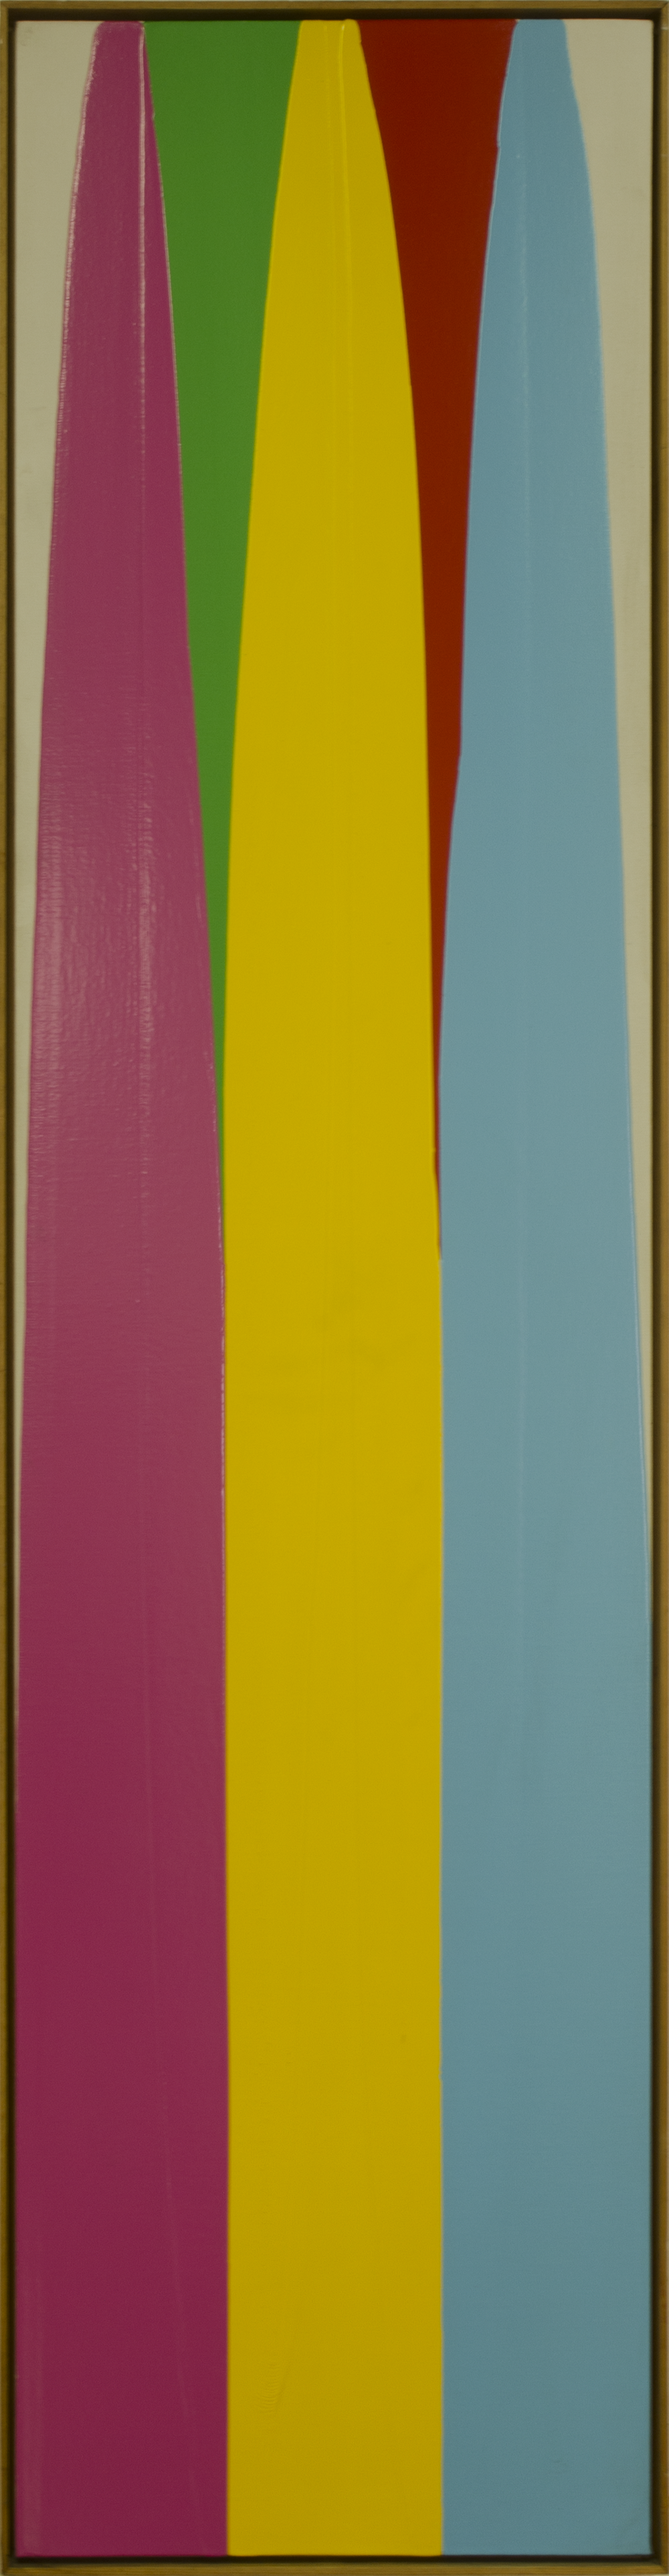 POUR- MAGENTA GREEN YELLOW RED CYAN1974 ©acrylic paint on primed canvas